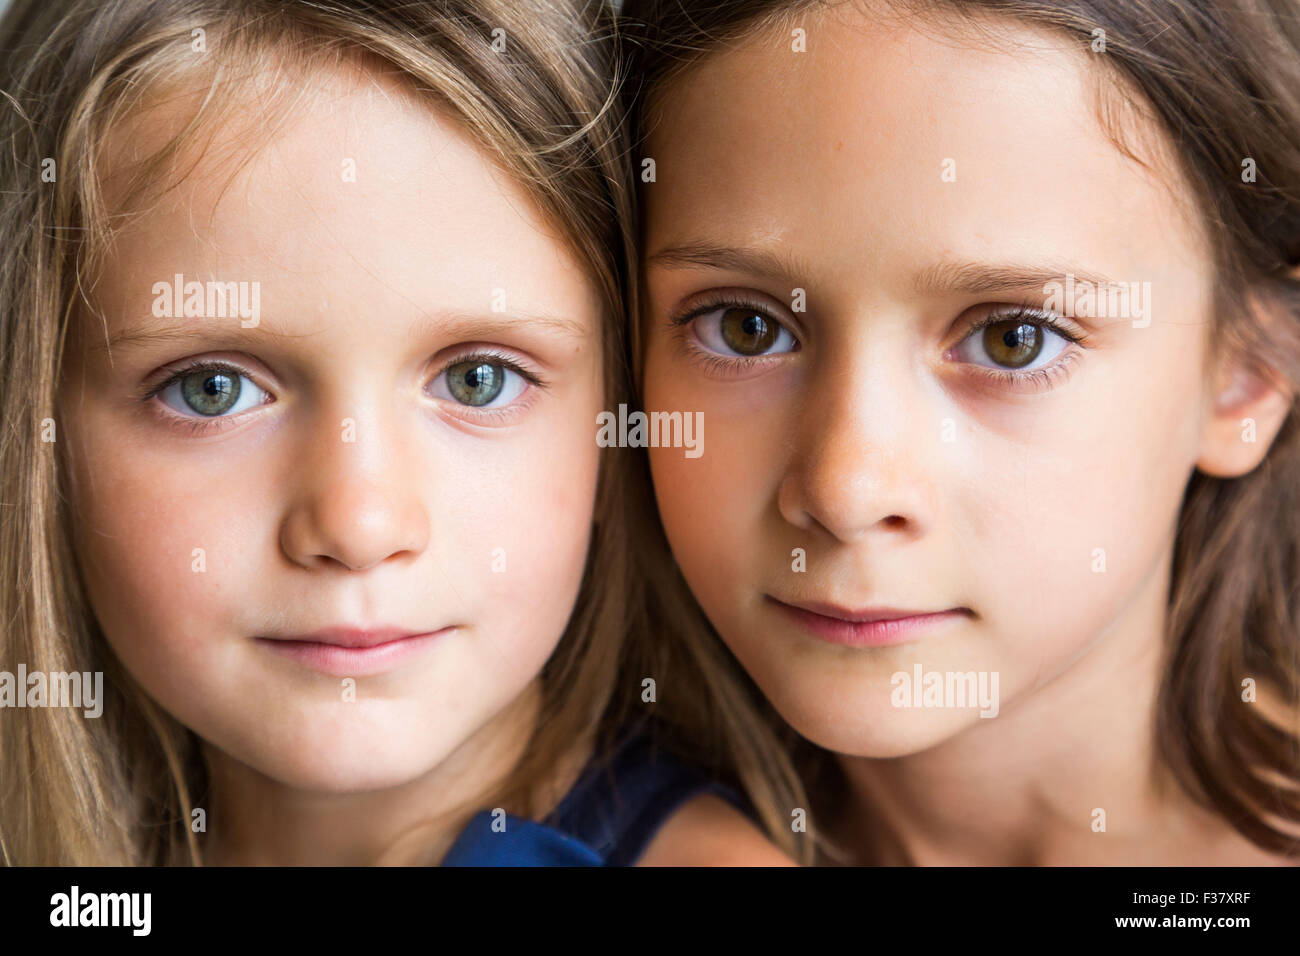 5 and 7 year old sisters. - Stock Image